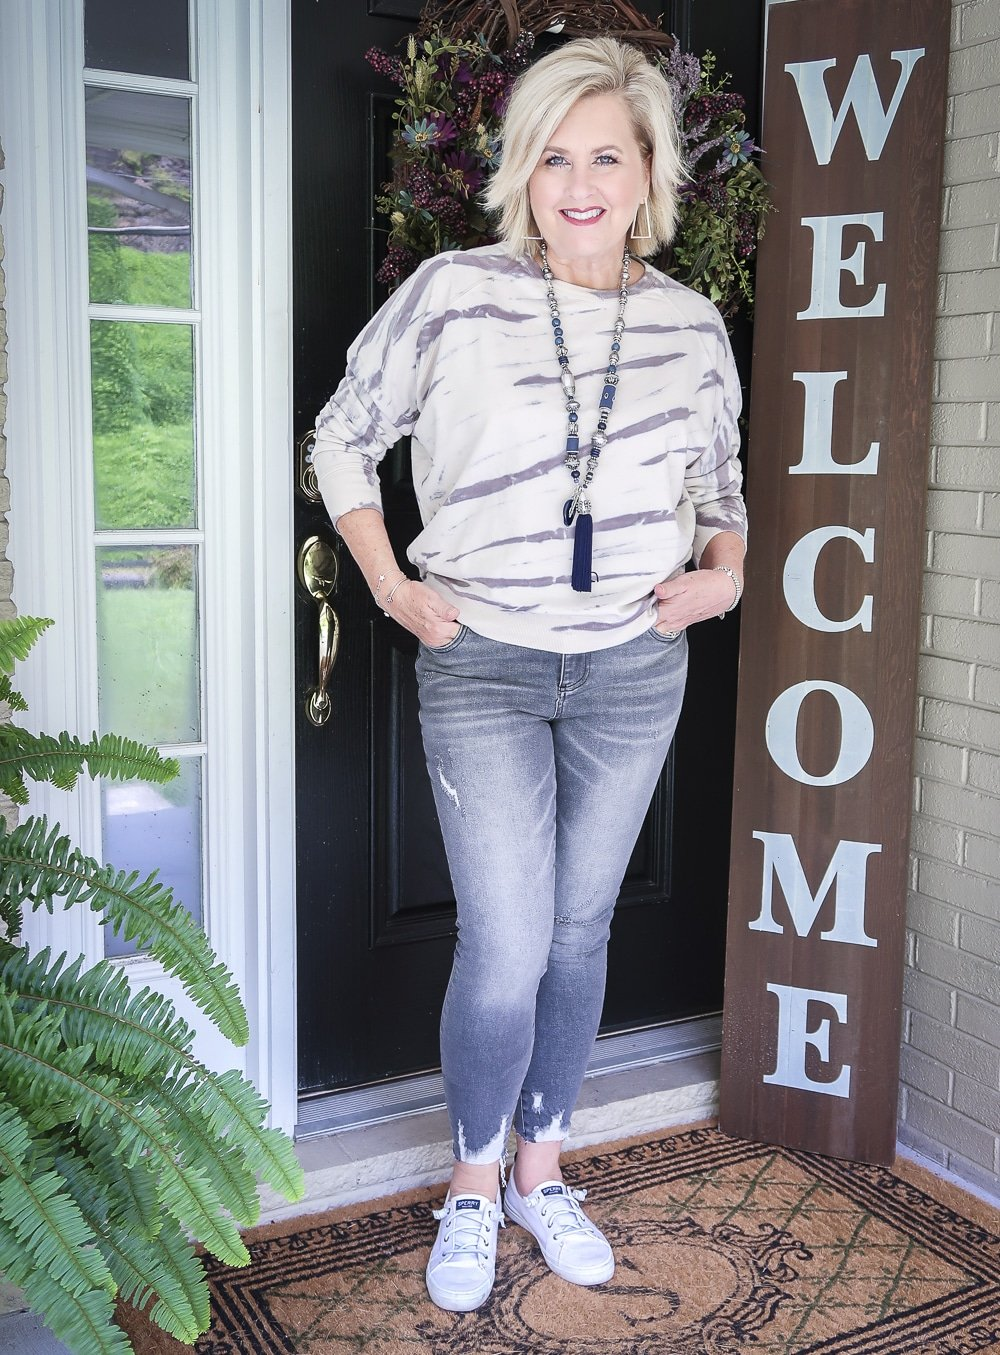 Fashion Blogger 50 Is Not Old is standing with her hands in her pockets and wearing a tie-dye sweatshirt with a pair of washed gray jeans from Kut From The Kloth with Sperry Crest Vibe sneakers